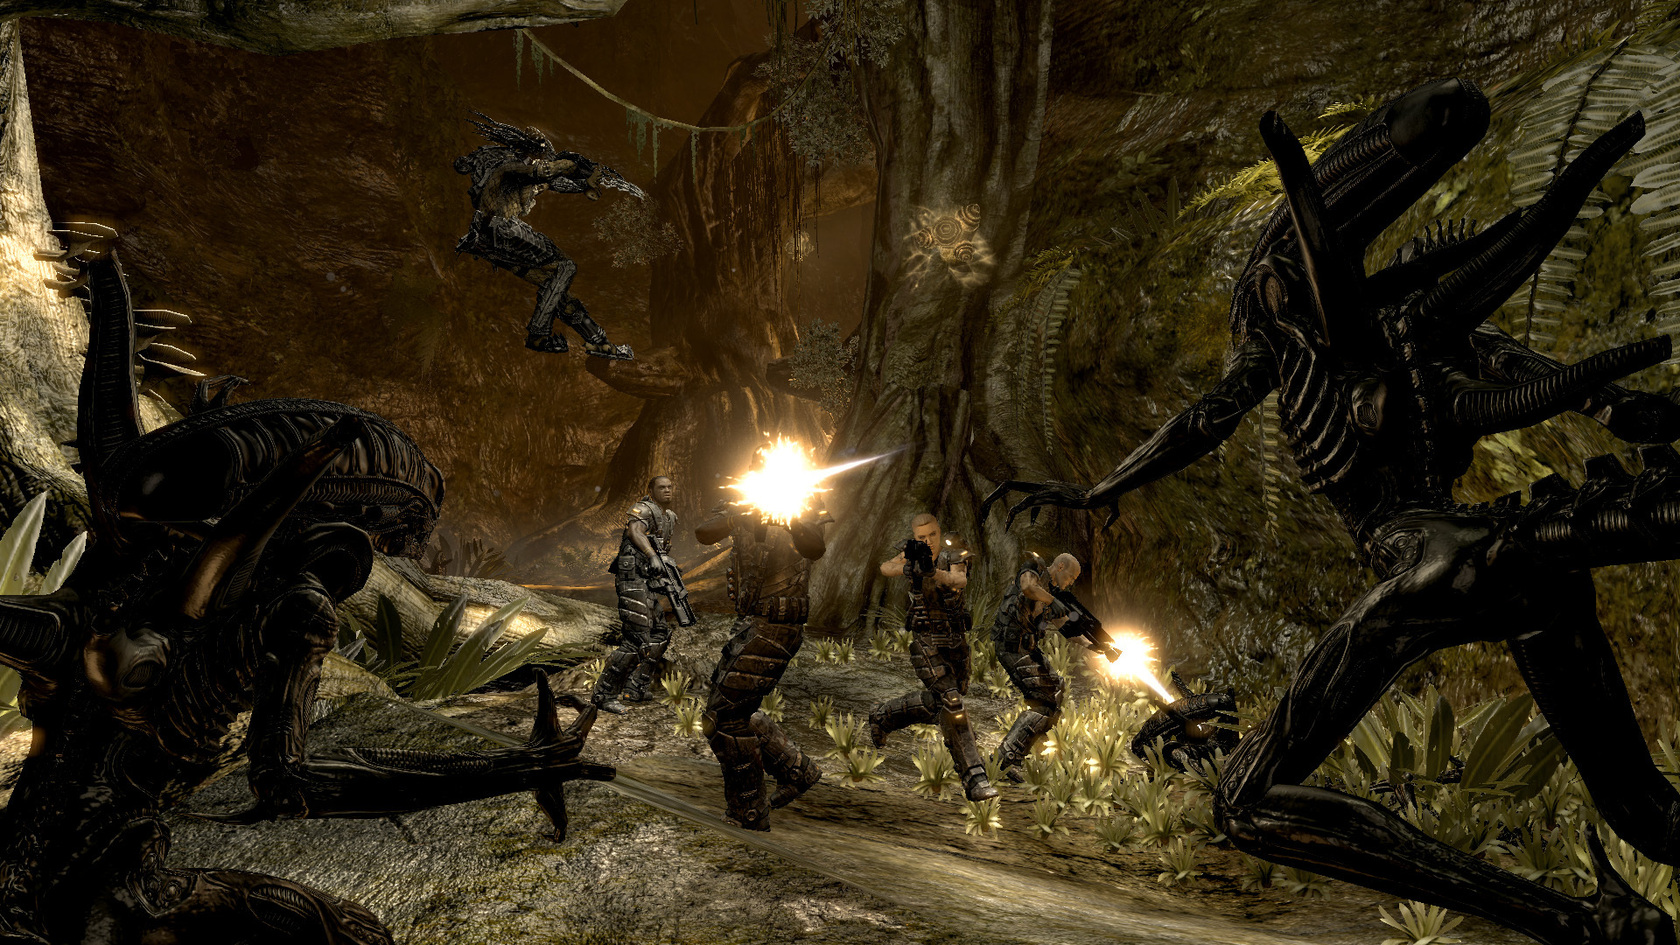 aliens vs predator 3 - photo #8